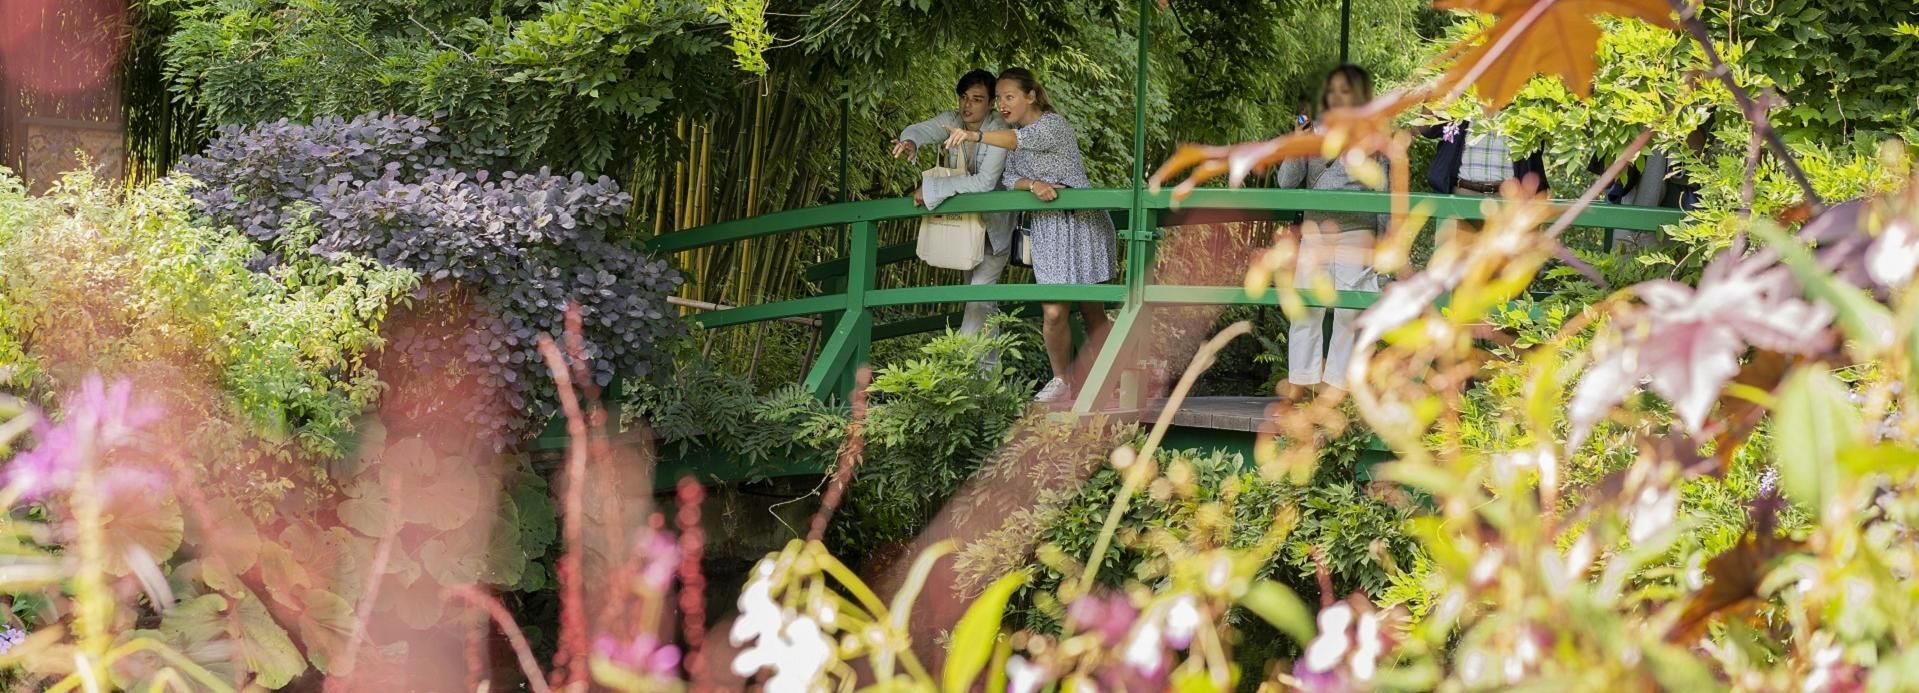 Full-Day Giverny & Versailles Tour by Minibus